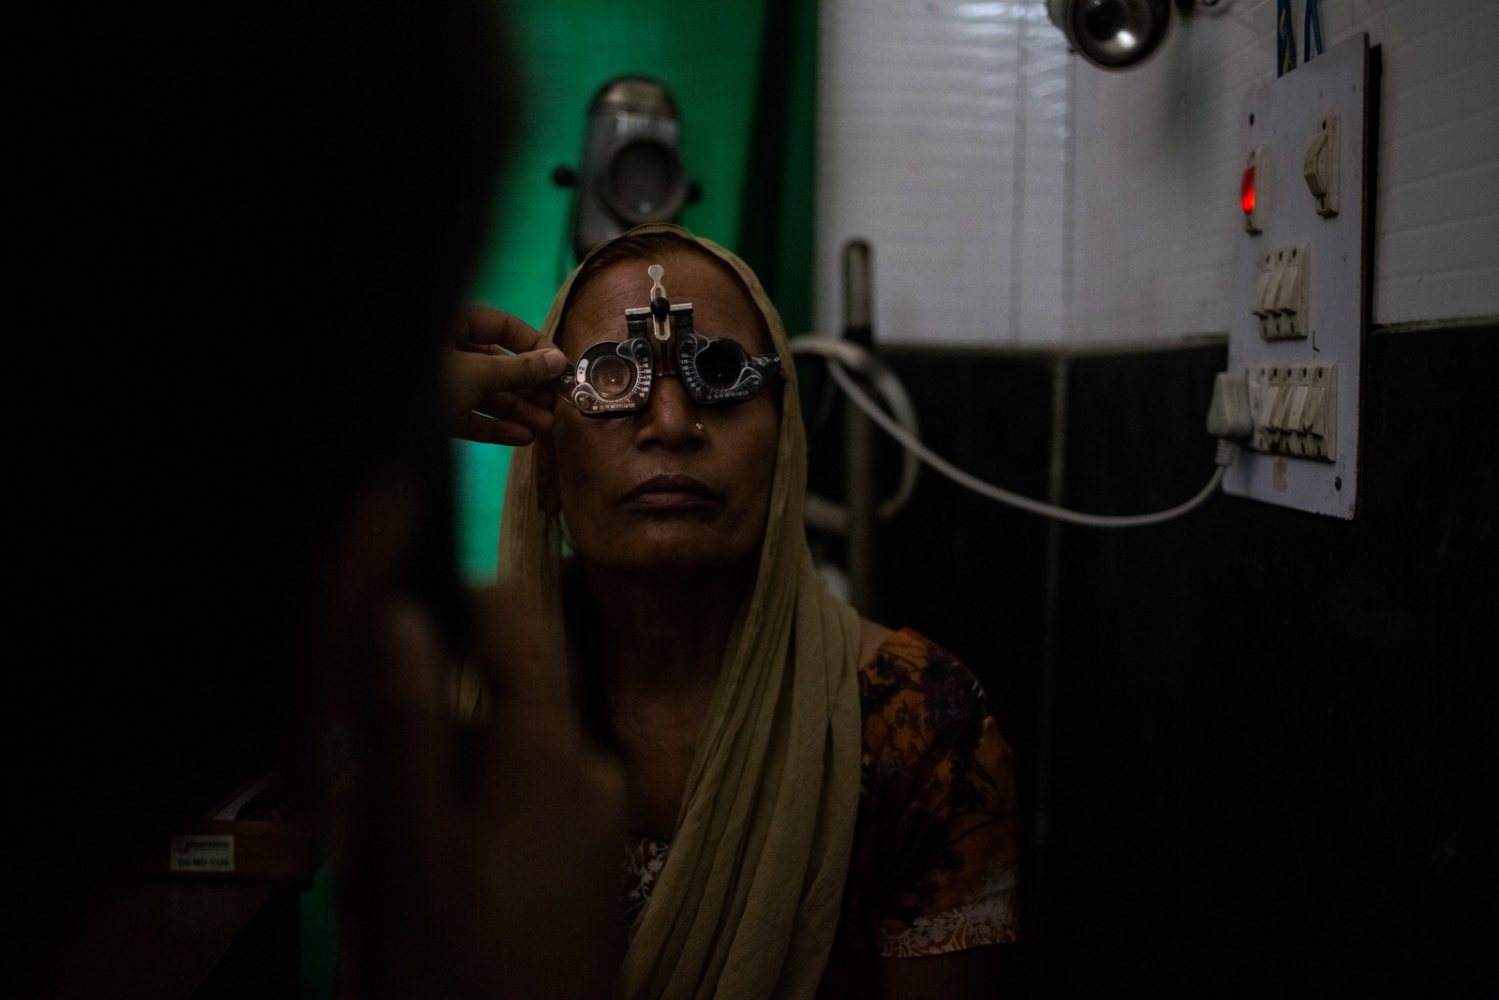 An Indian patient undergoes an eye examination at the Dr Shroff Charity Eye Hospital Vision Centre in Mustafabad in New Delhi on August 4, 2014.